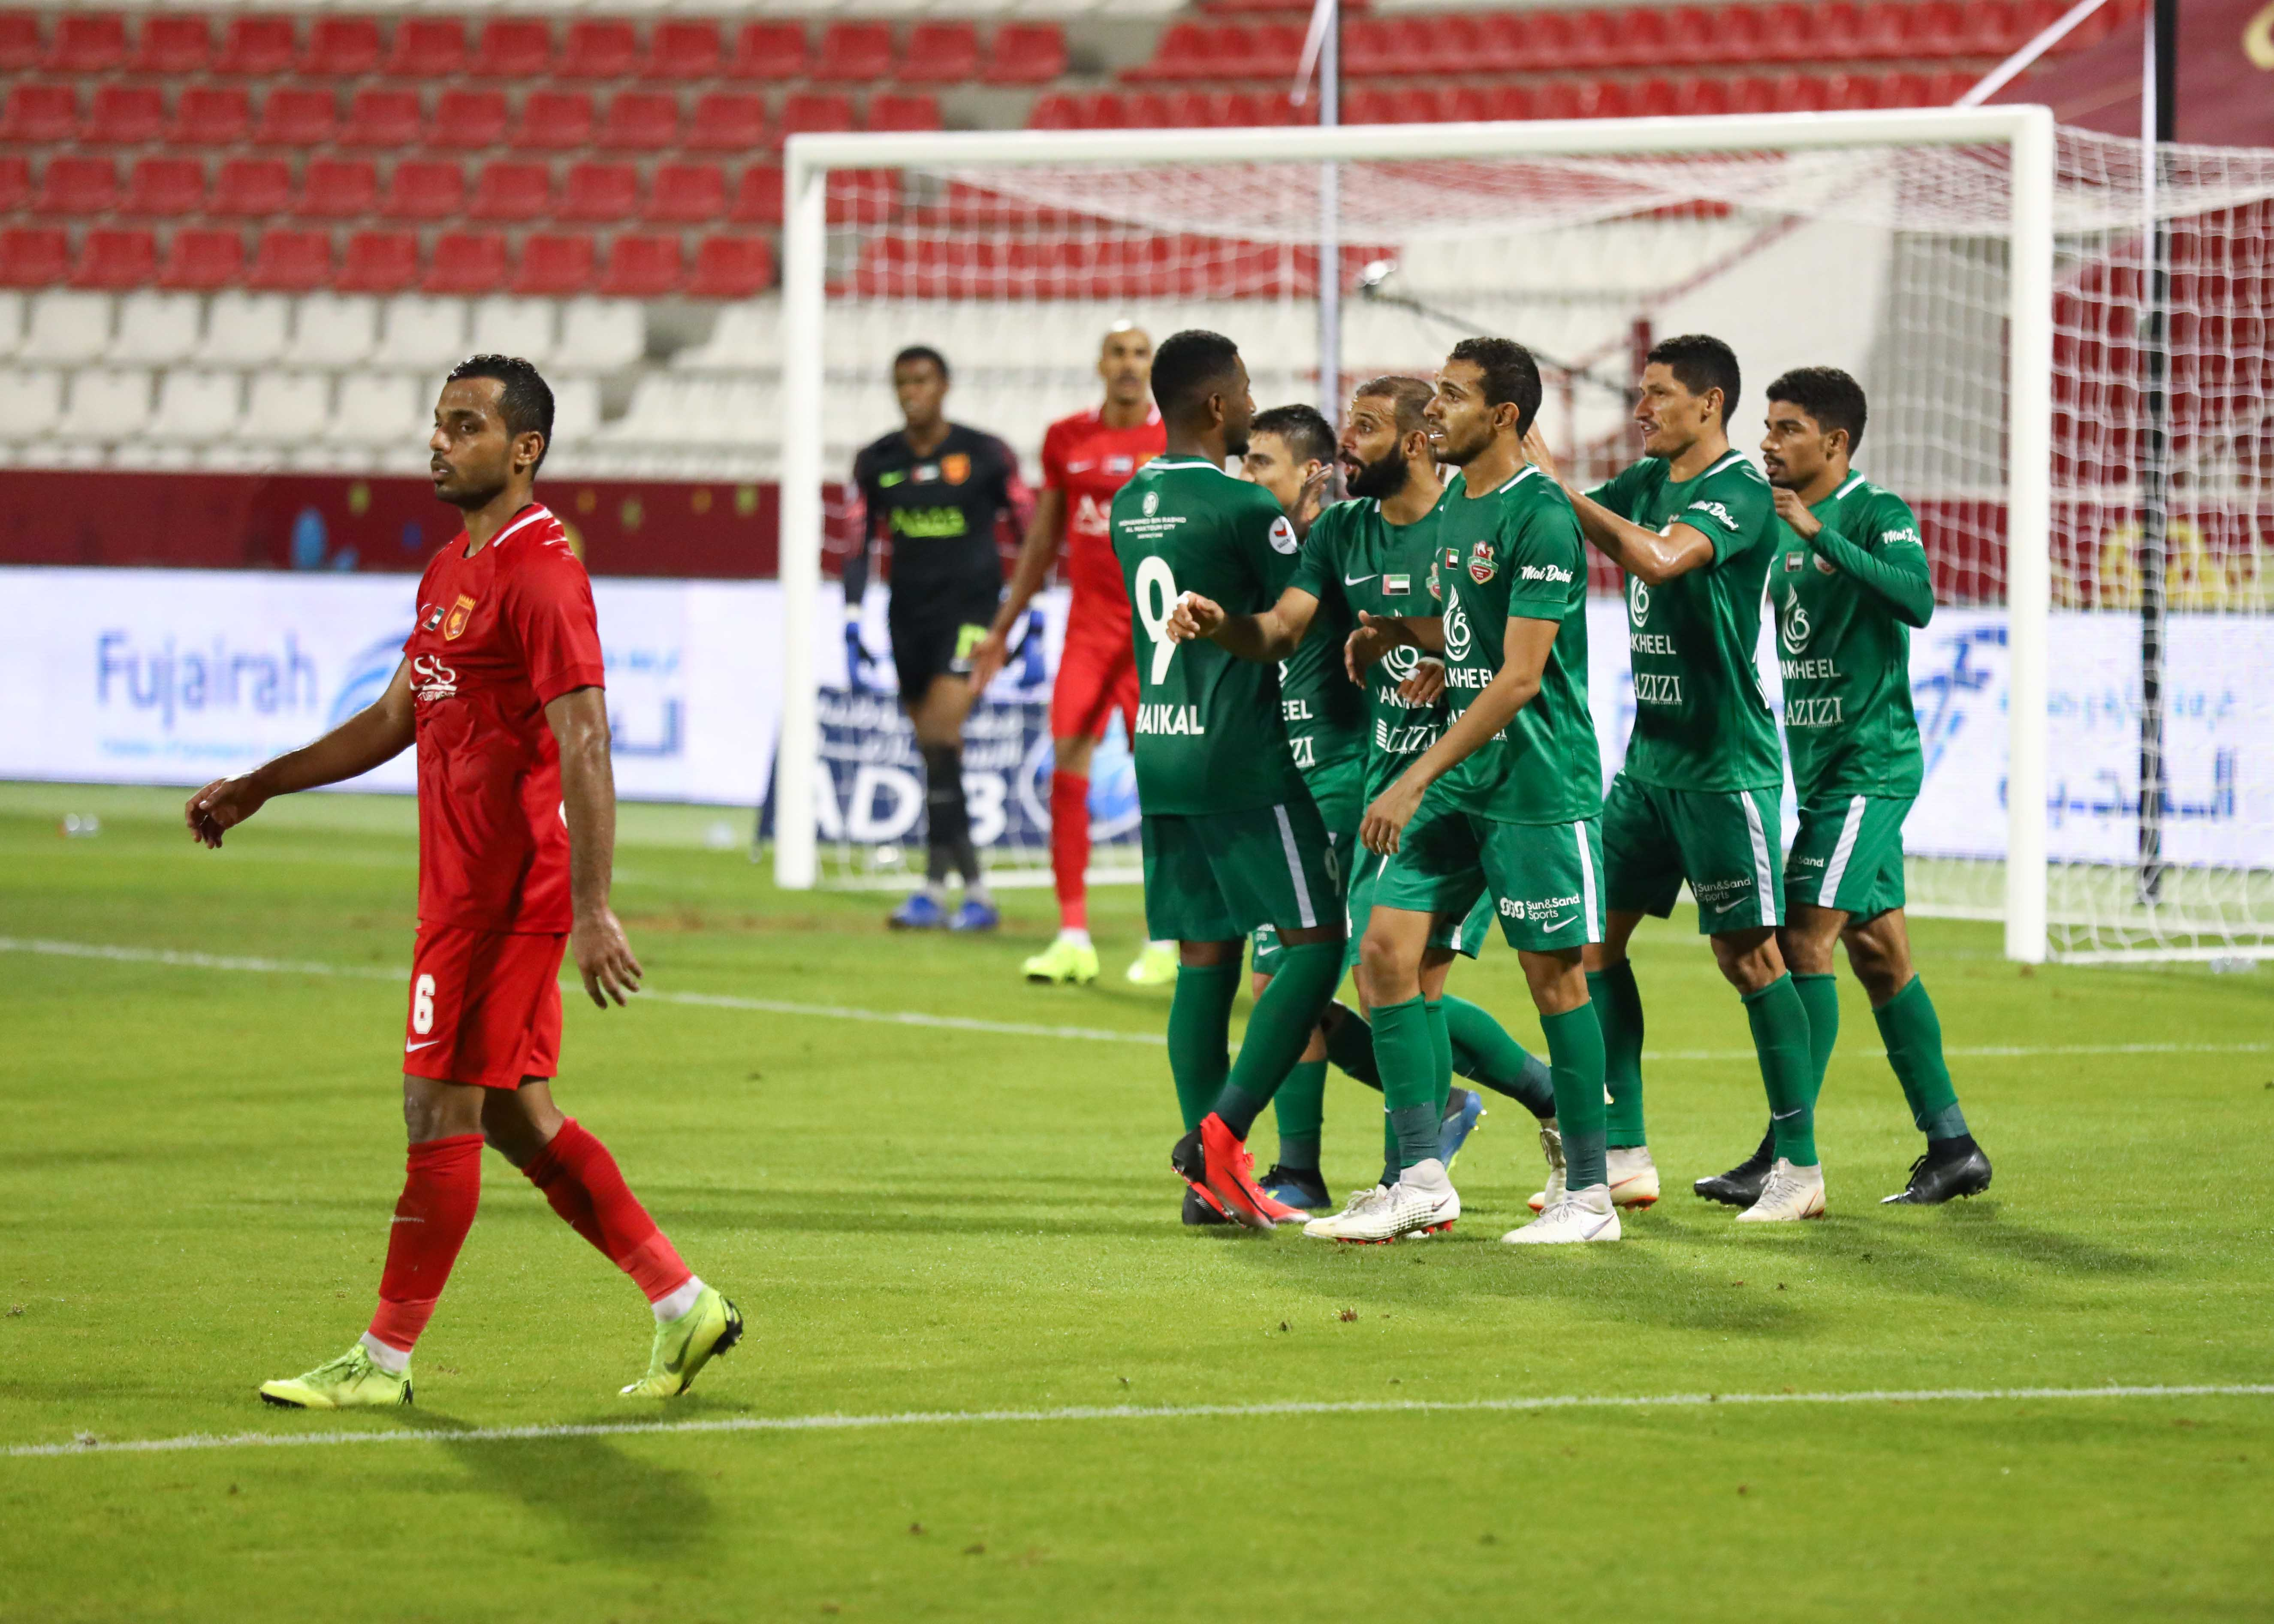 Shabab Al Ahli Collect All Three Points At Fujairah